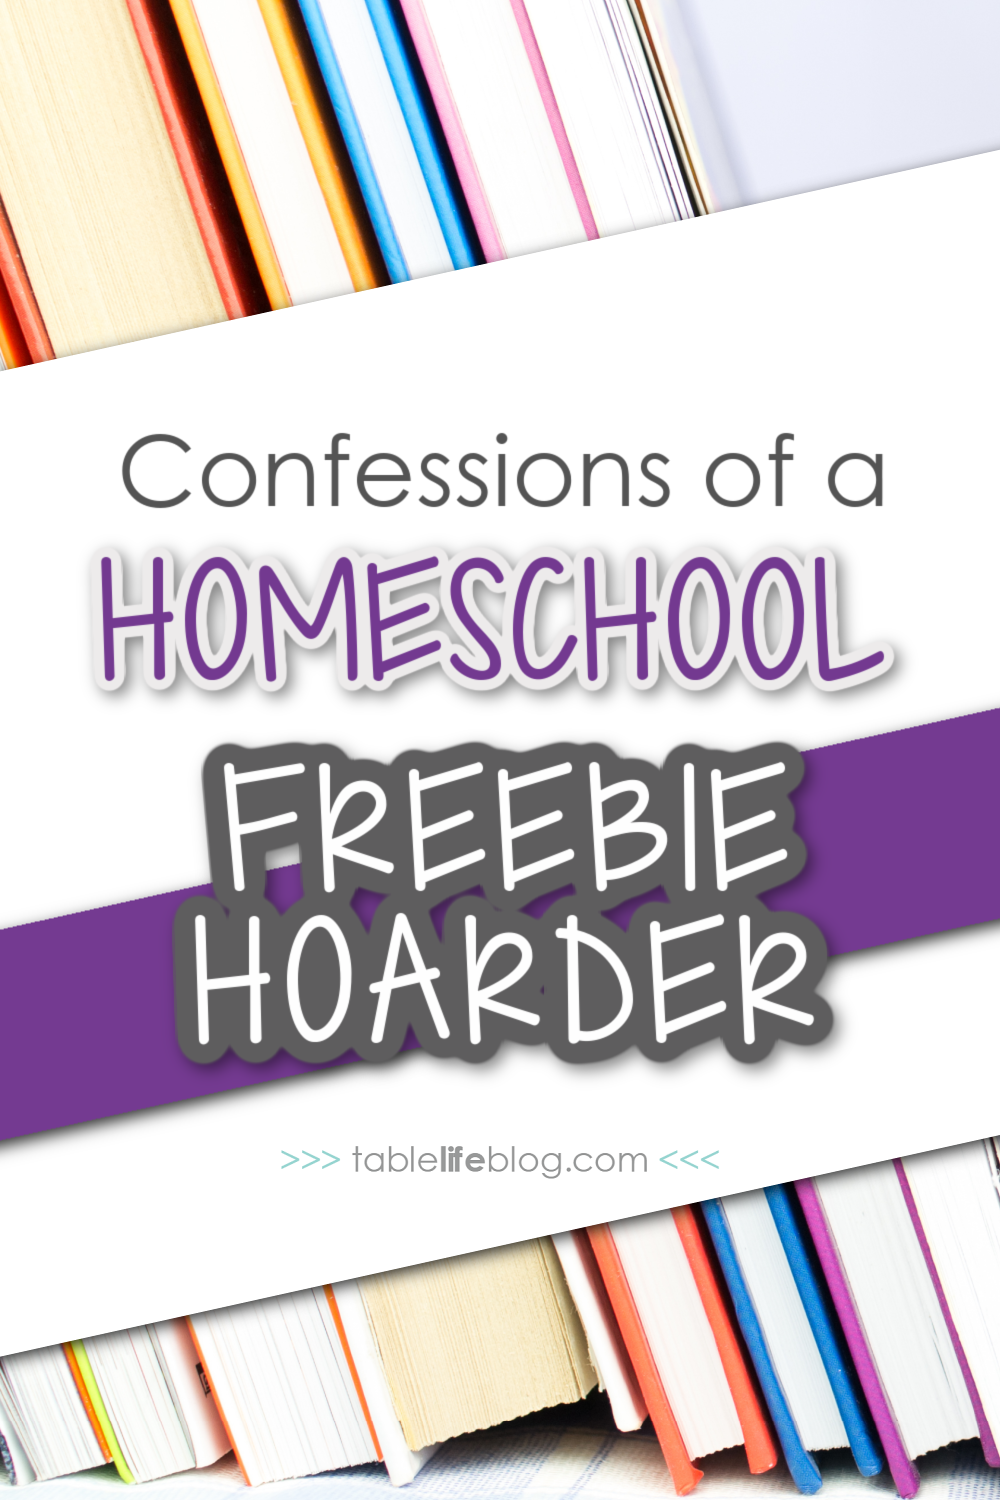 Scooping up all those homeschool freebies seems like a good way to cut expenses while home educating, but does that make them a good fit for your homeschool? Eh, probably not.